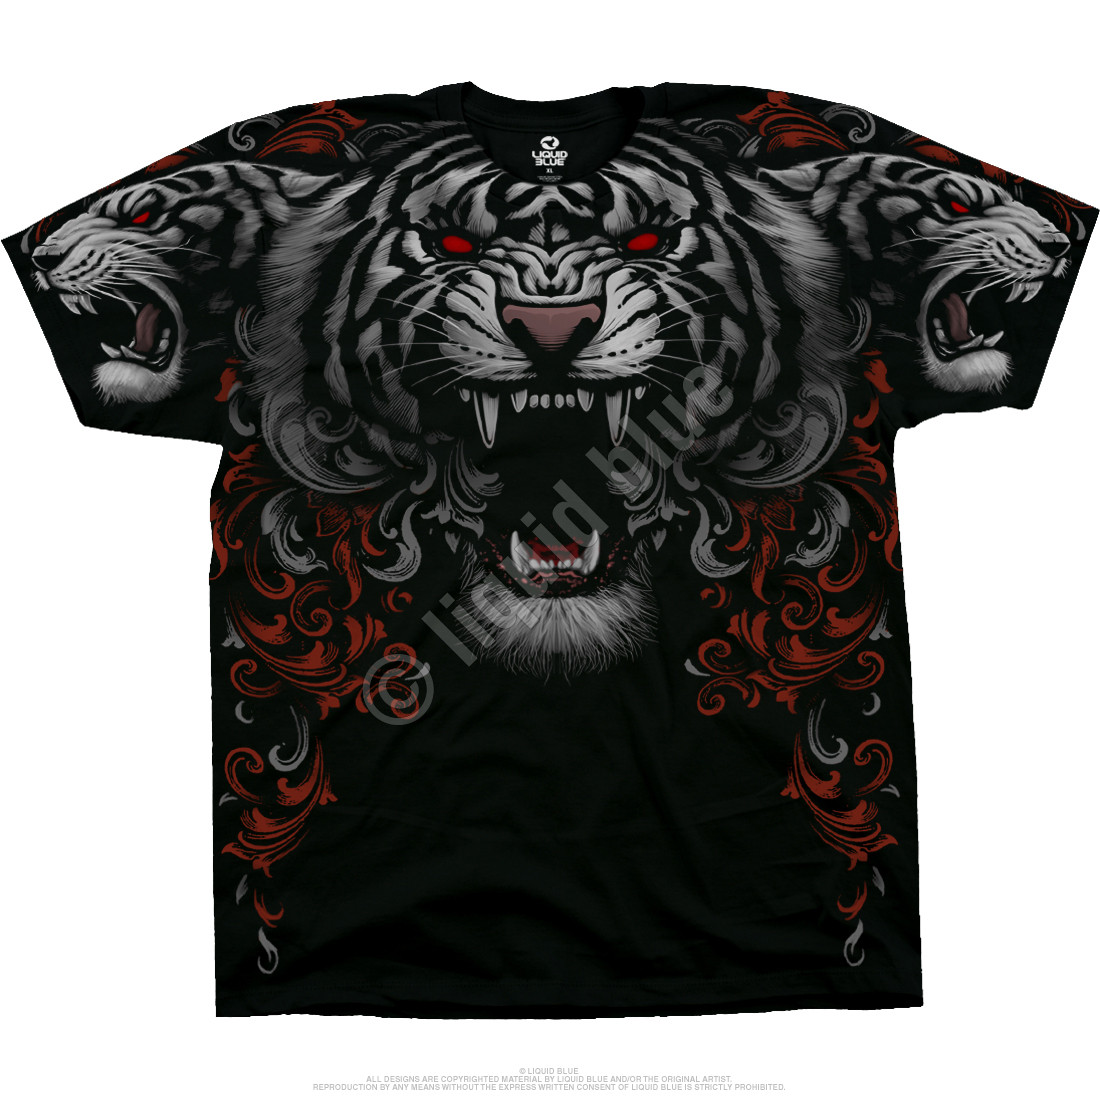 Three Tiger Roar Black T-Shirt